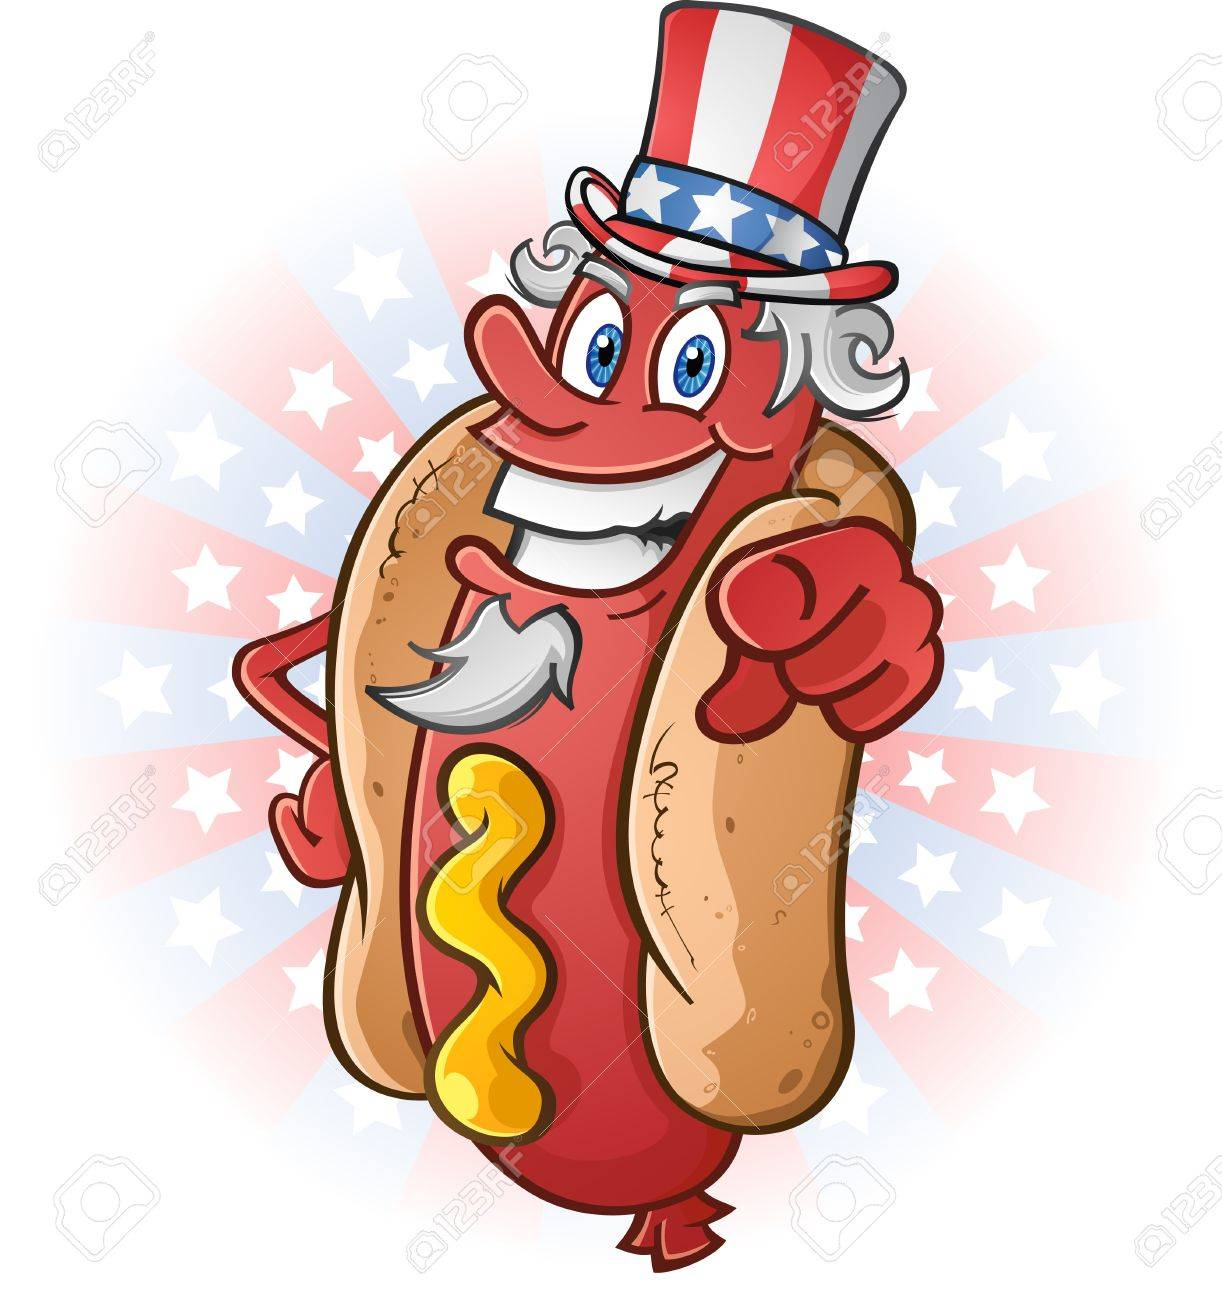 Cookout border clipart hot dog cookout invite stock vector art - Grill Top Uncle Sam Hot Dog Cartoon Character On The Fourth Of July